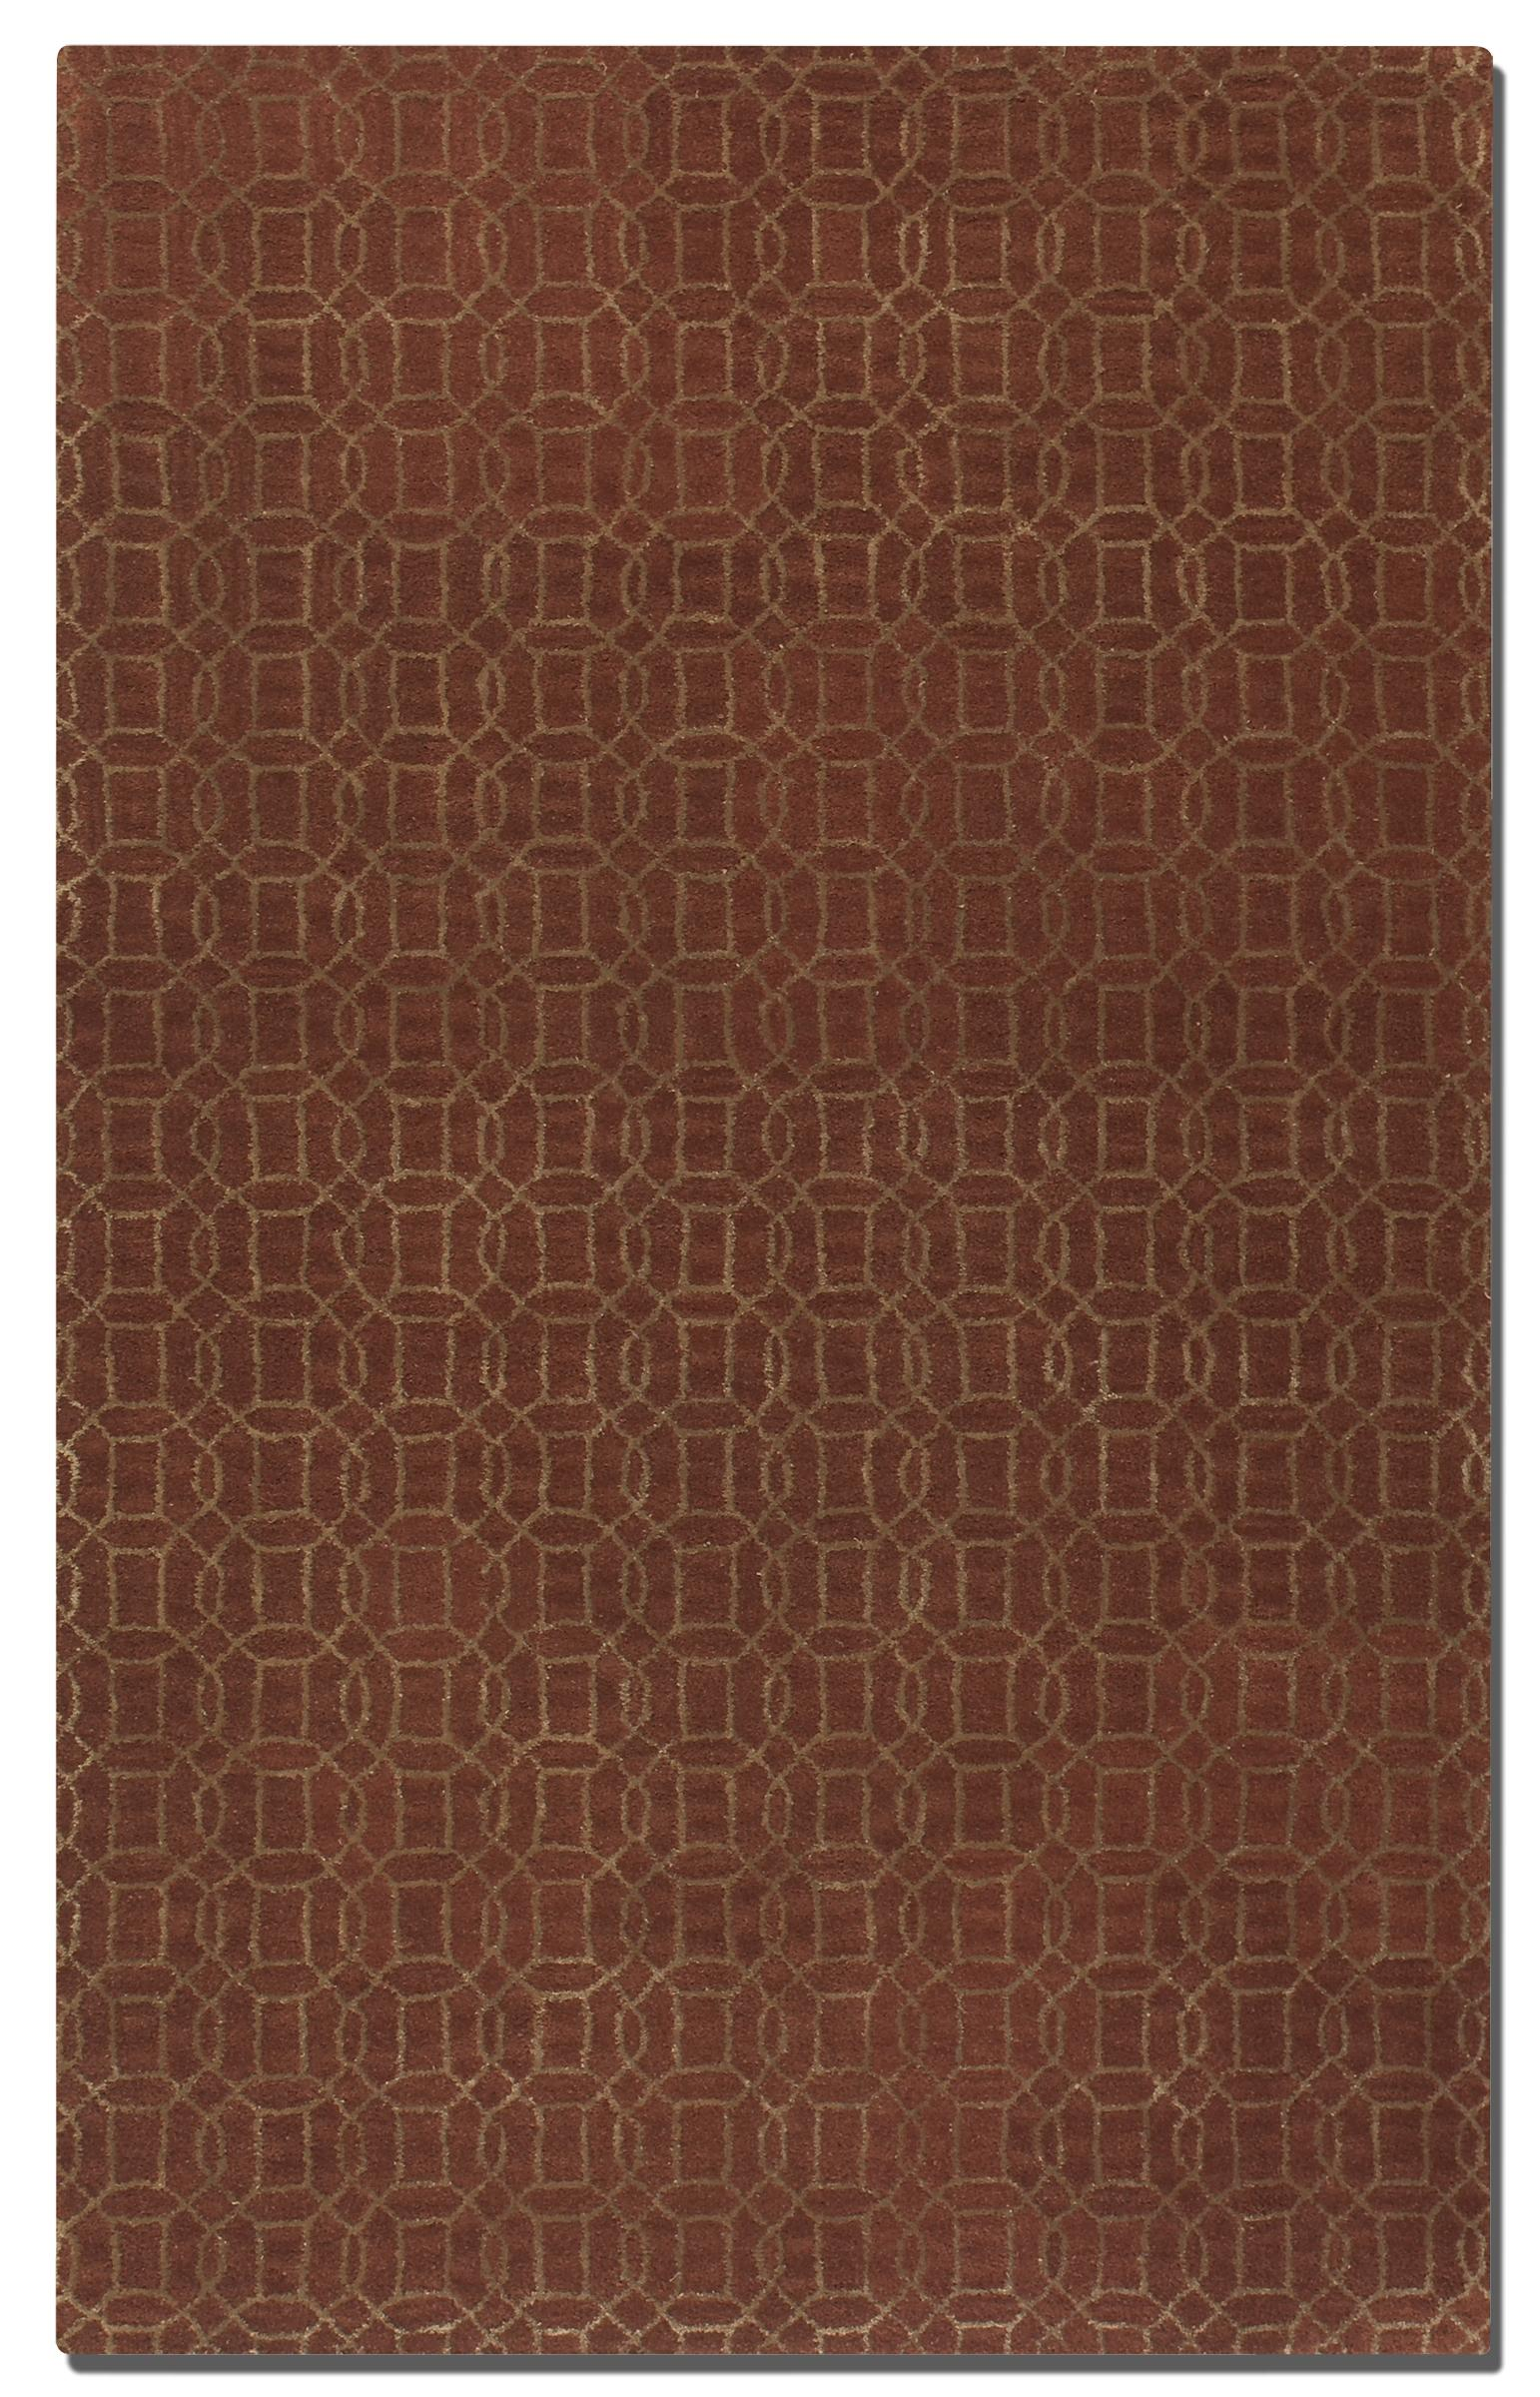 Uttermost Rugs Cambridge 5 X 8  - Item Number: 73029-5